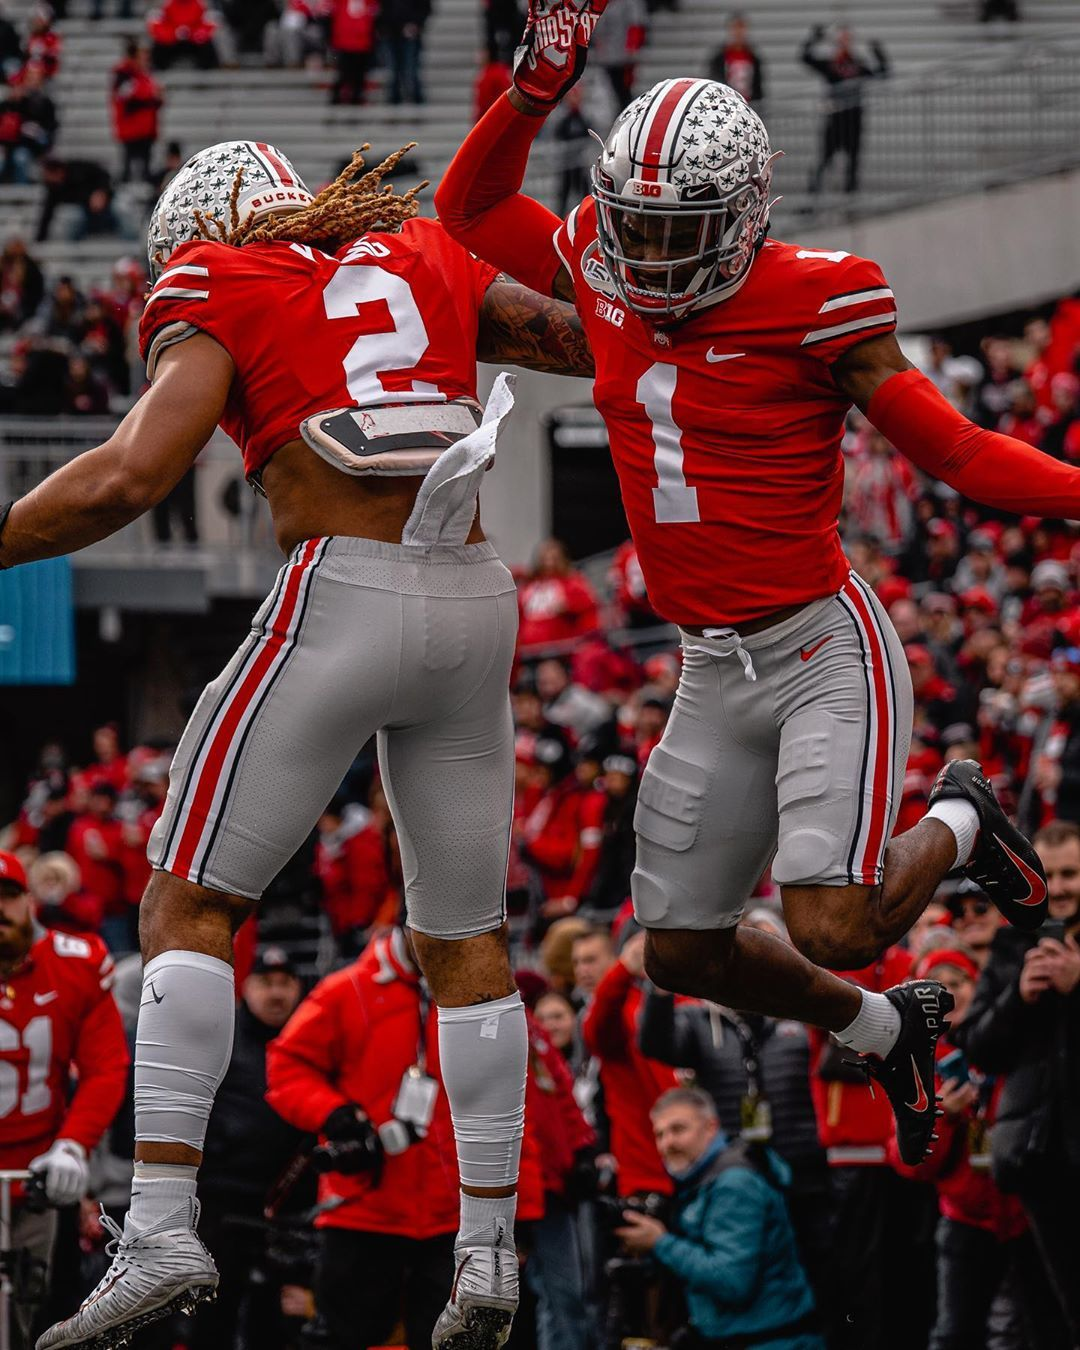 The Ohio State Football On Instagram Brothers Gobucks Toughlove Ohio State Football Ohio State Football Uniforms